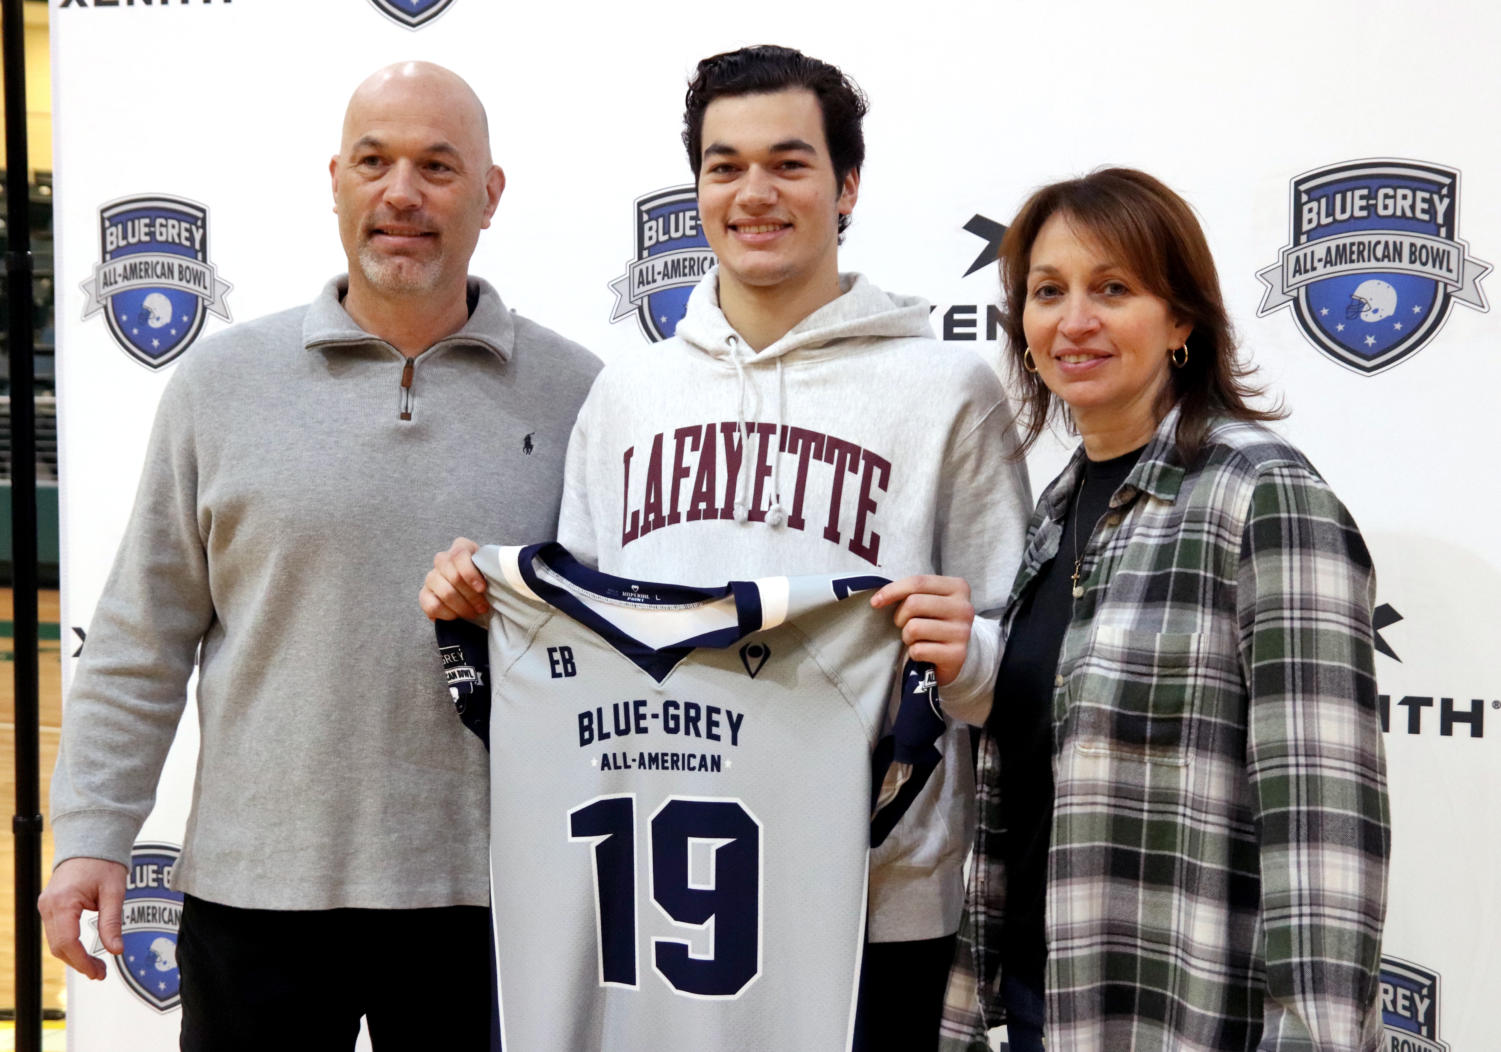 Keegan Shoemaker stands alongside his parents as he receives his All-American jersey. Shoemaker committed to Lafayette college earlier this year. Shoemaker led the football team to nine wins in his senior season at quarterback.